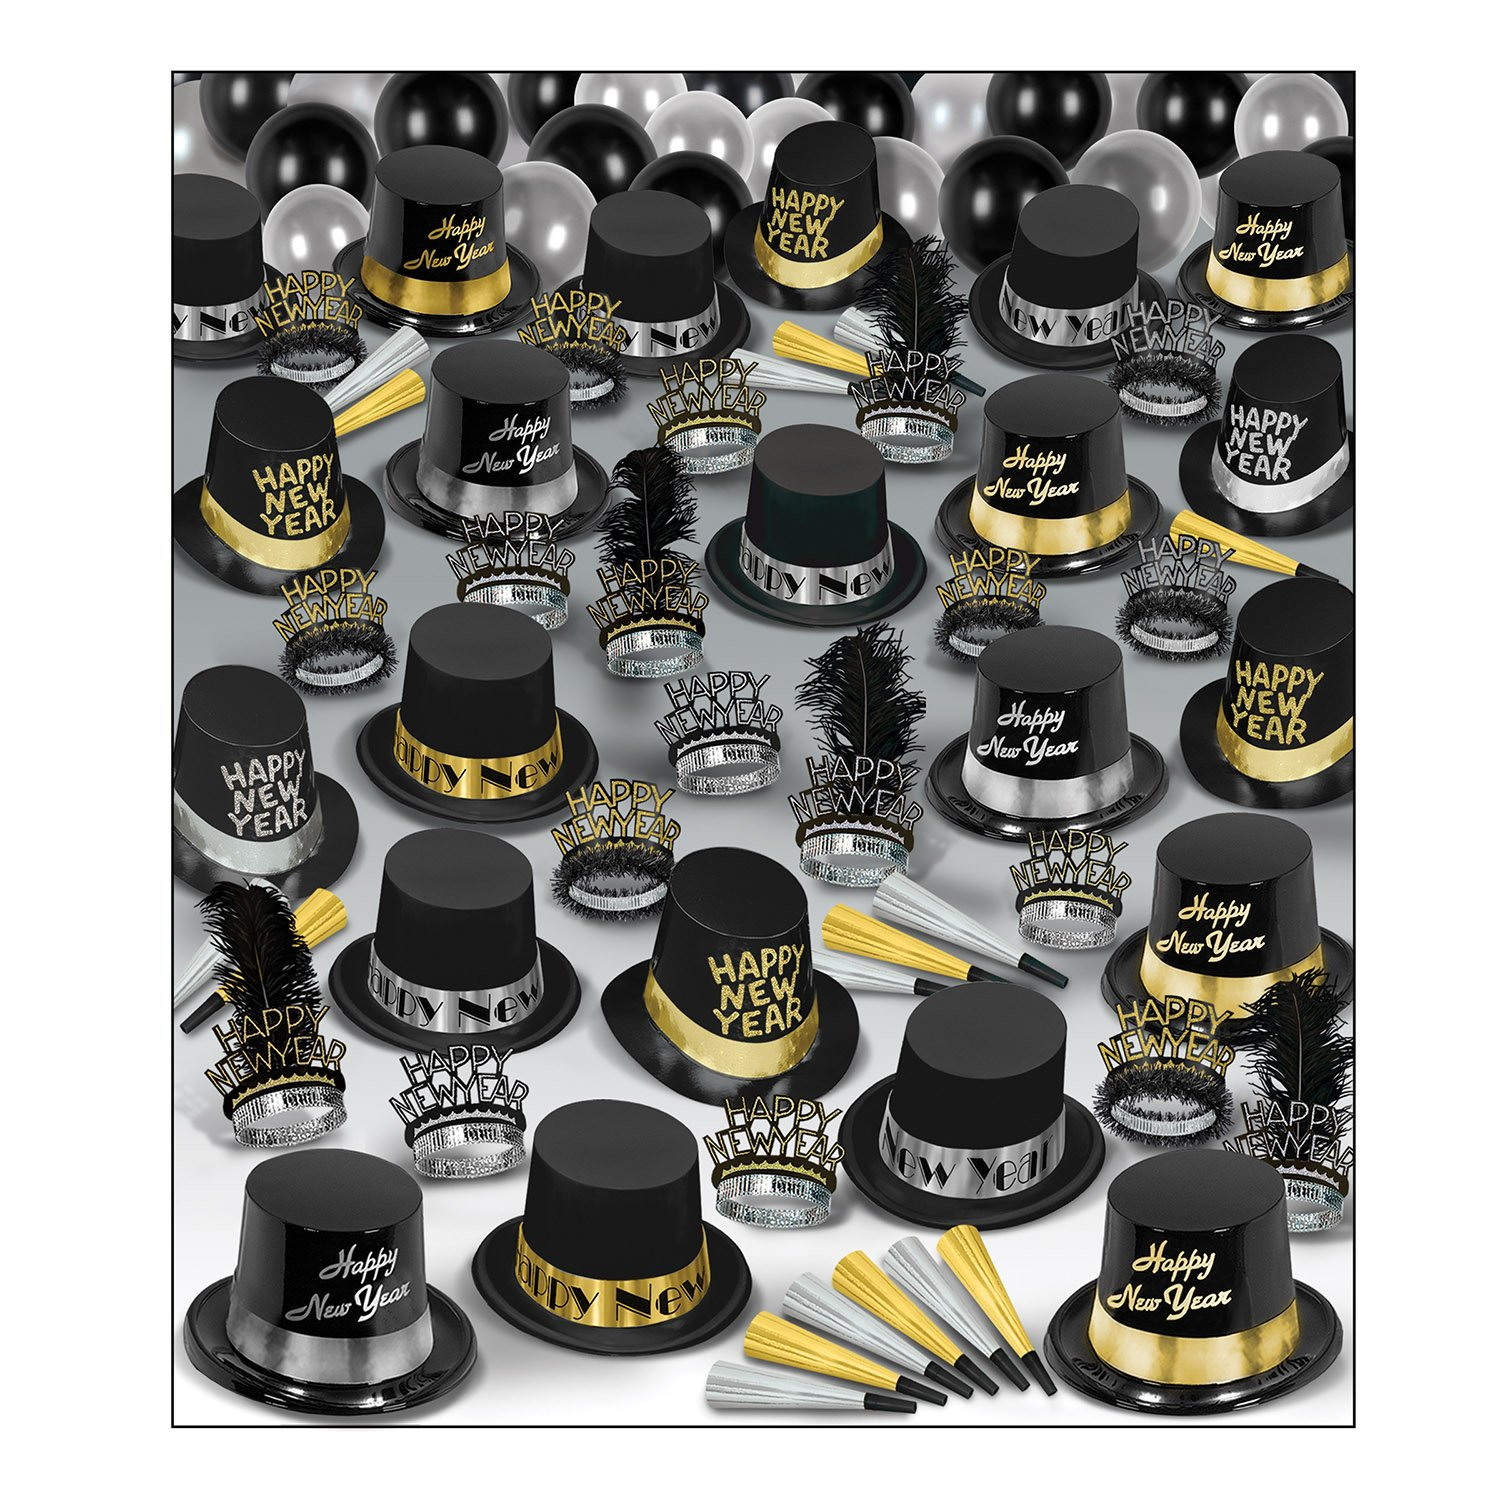 Beistle 88938-100 Silver Gold Super Deluxe Assortment for 100 People, Black/Silver/Gold by Beistle